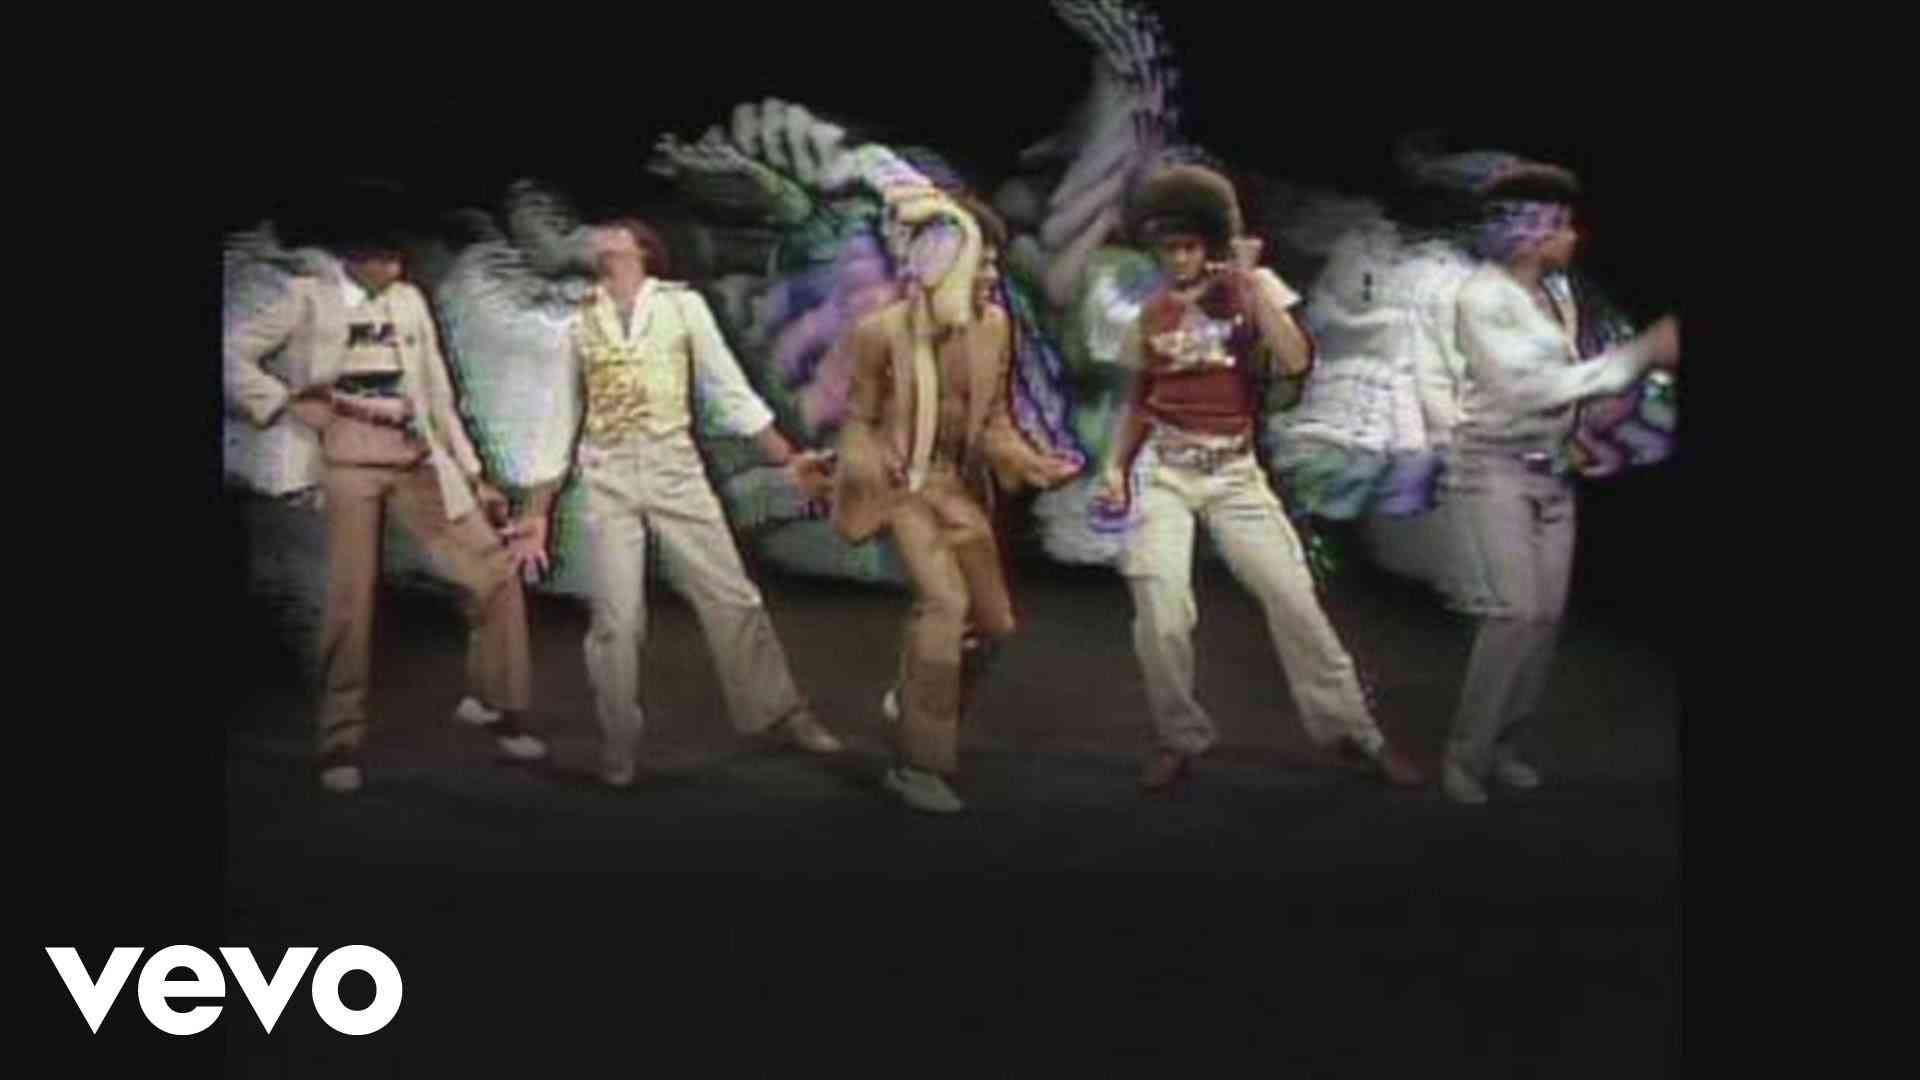 The Jacksons - Blame It On the Boogie - YouTube